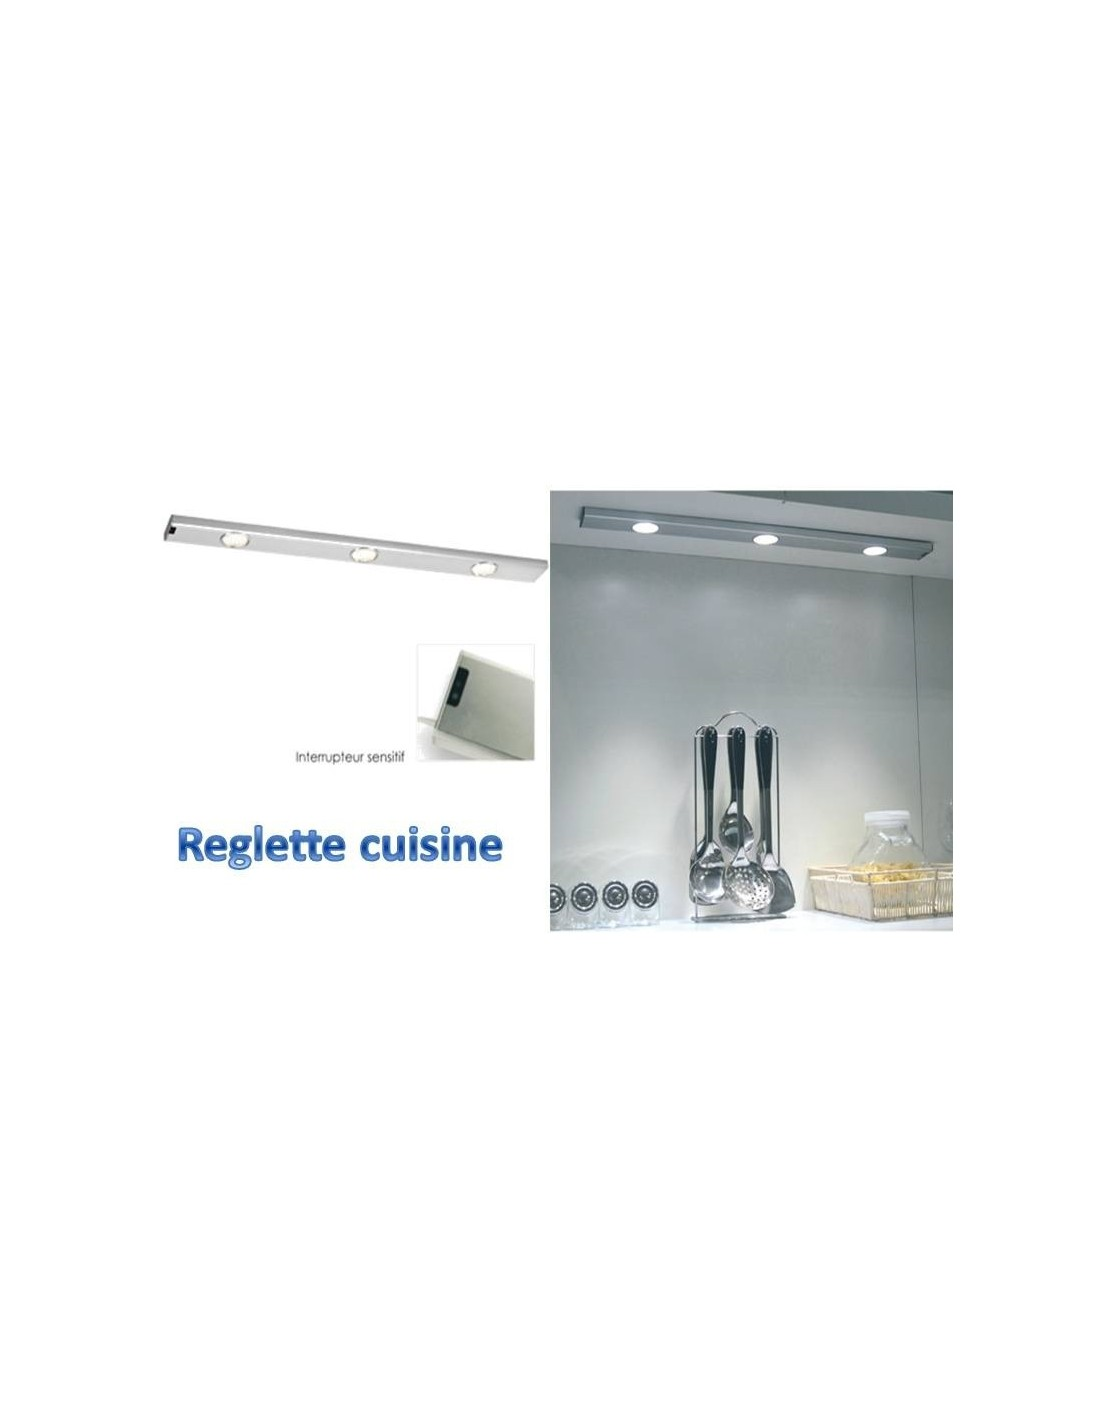 eclairage led cuisine eclairage led du0027une cole de cuisine avec des dalles led lazuli kit. Black Bedroom Furniture Sets. Home Design Ideas